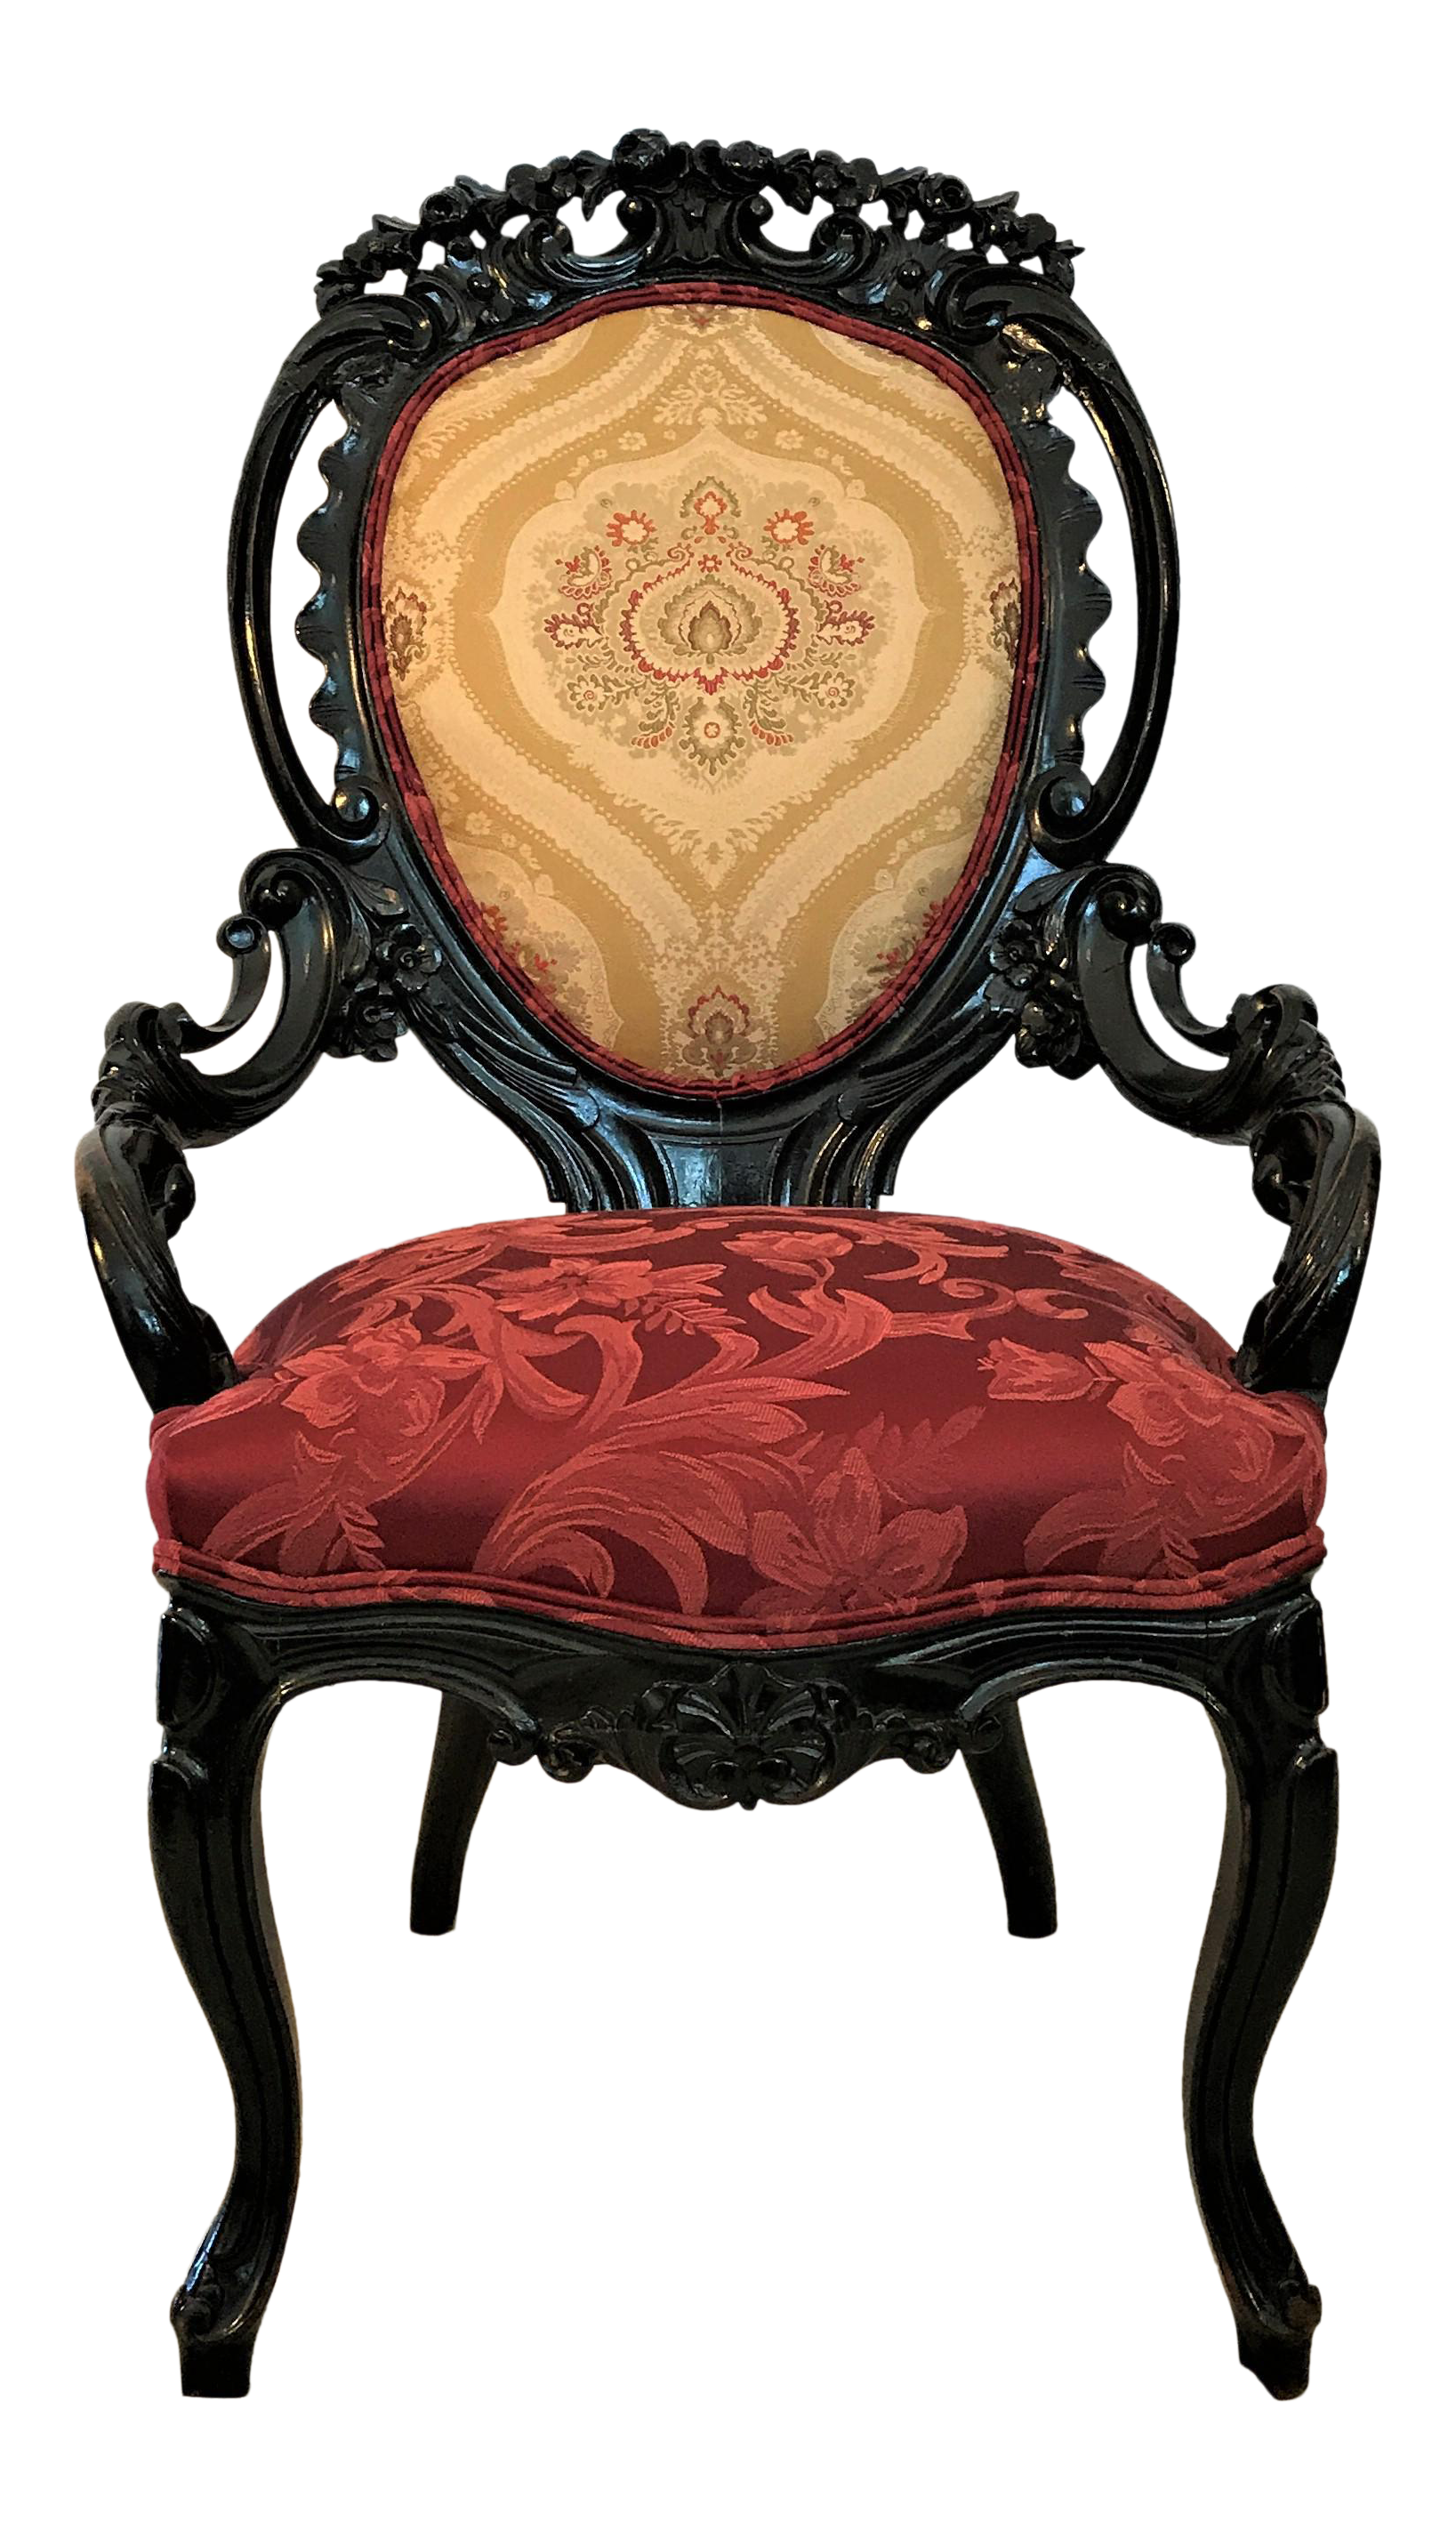 1860 Victorian Rococo Chair For Sale